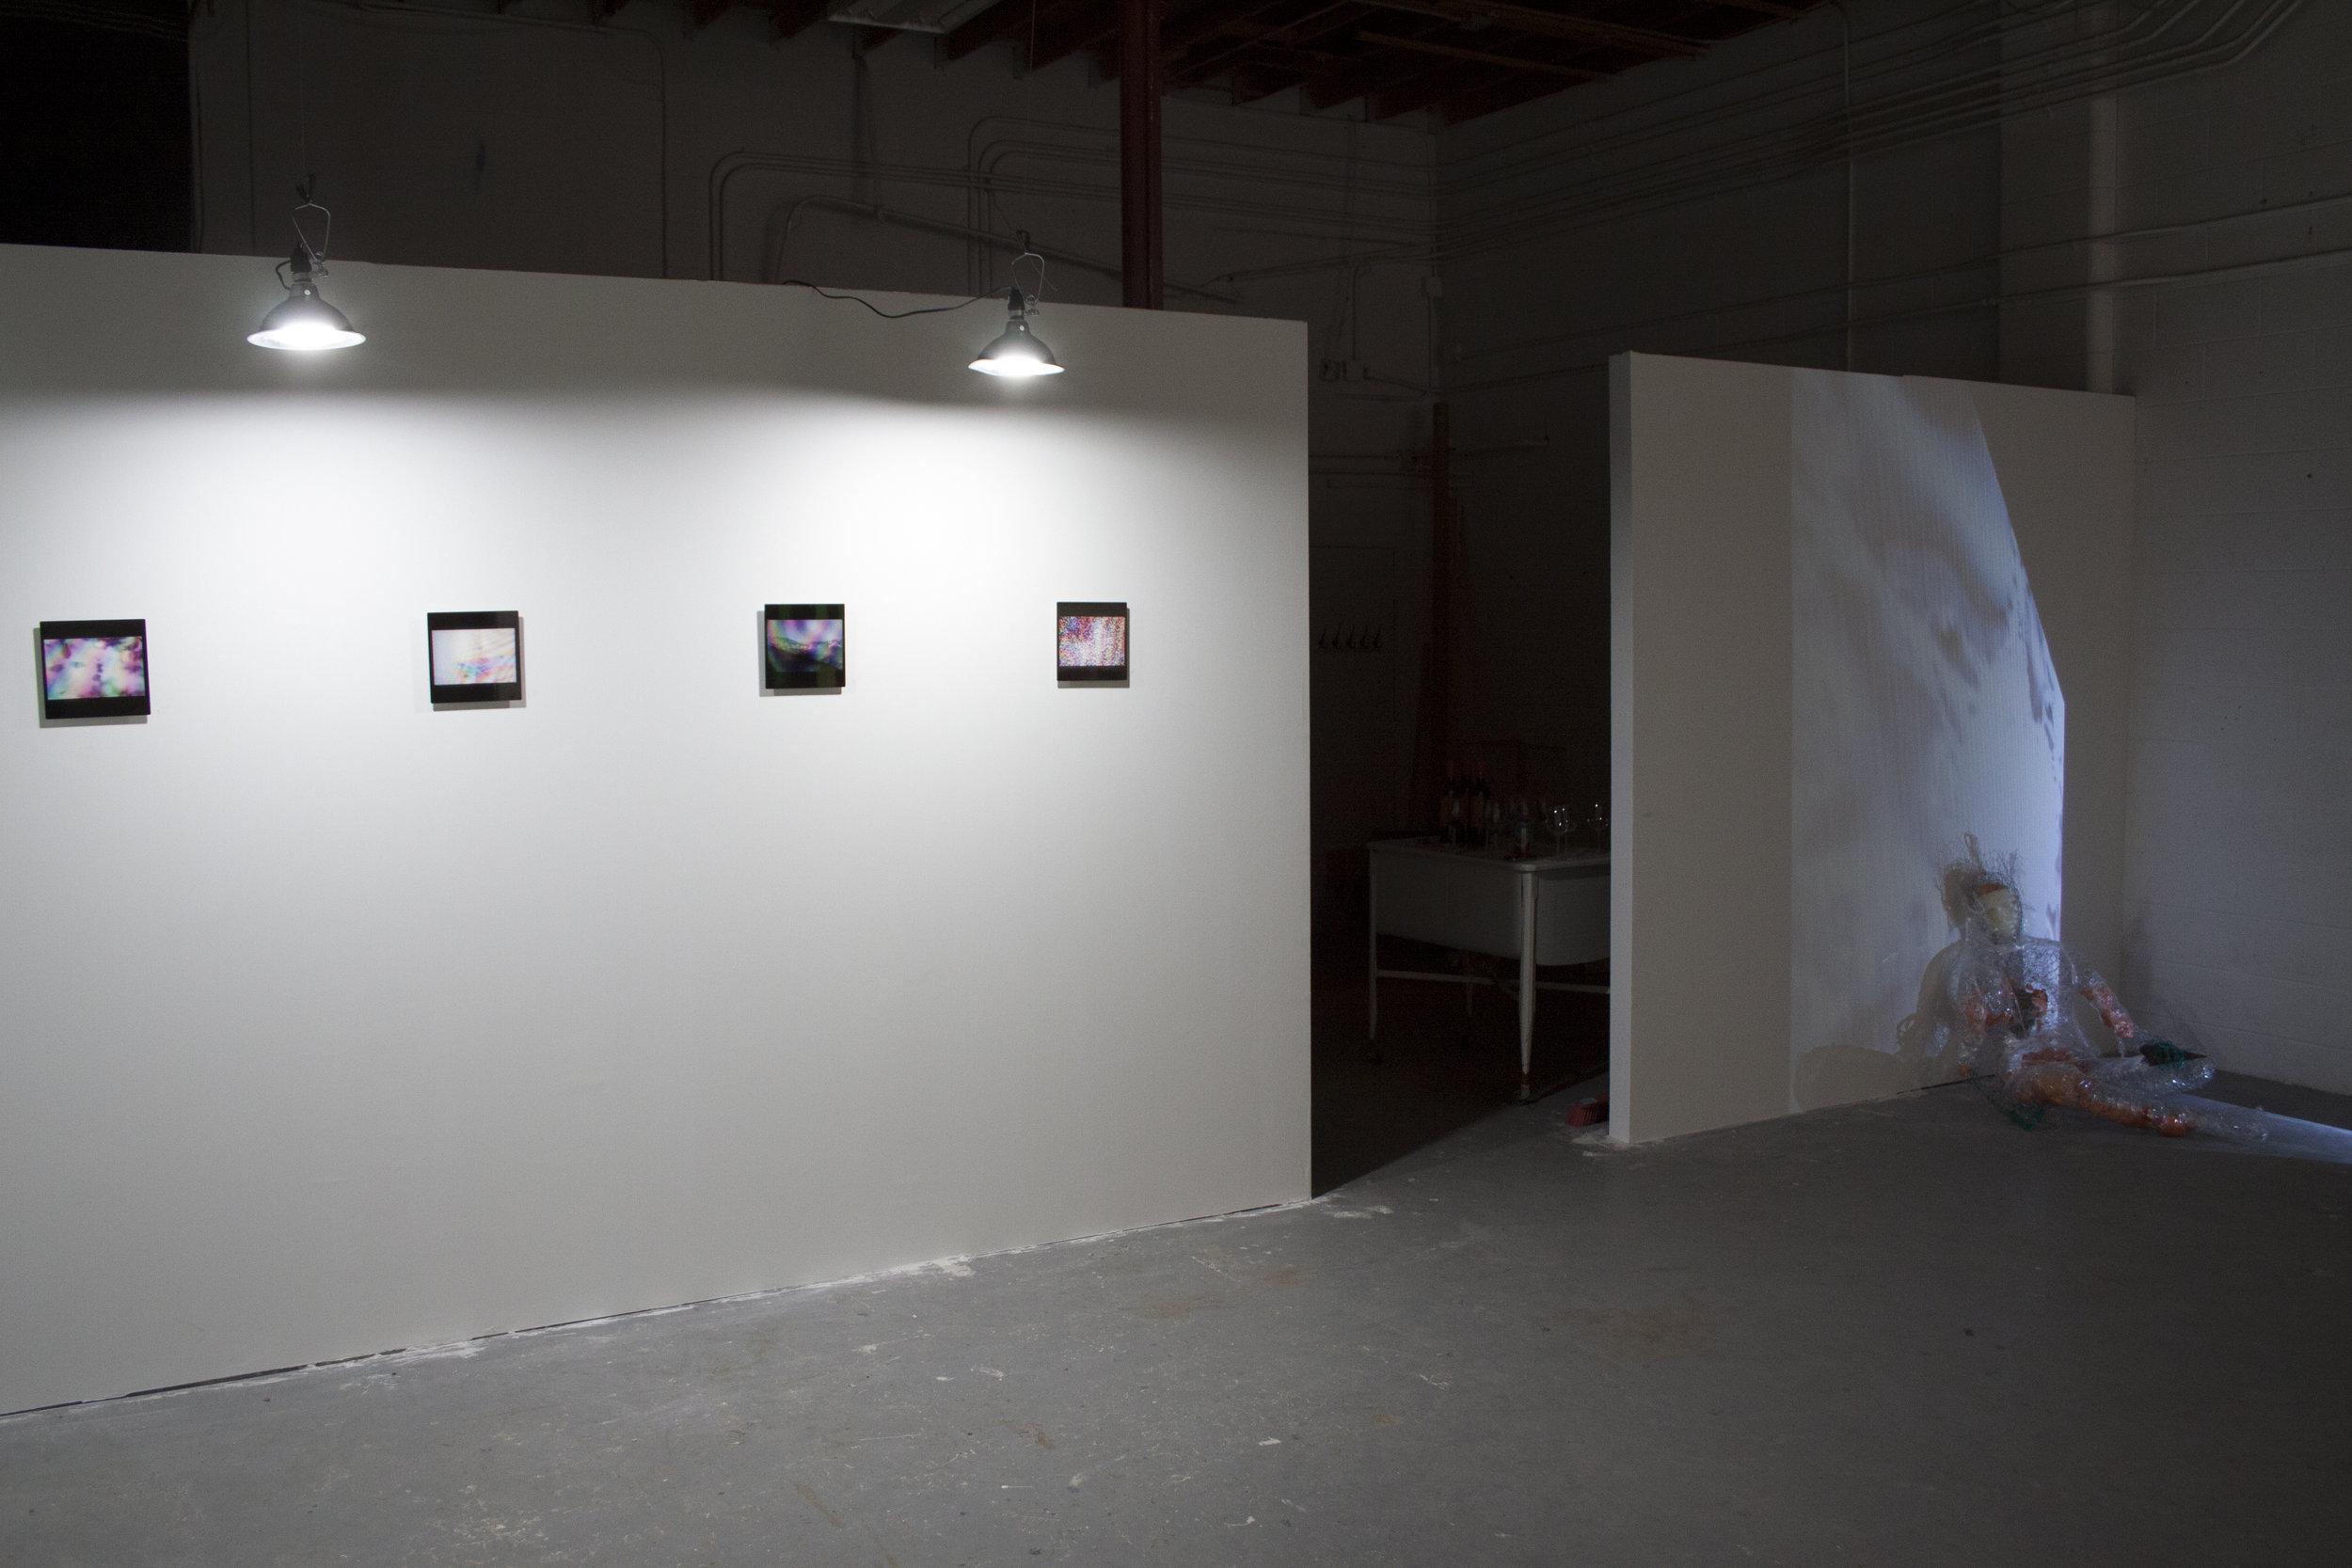 Installation view, Ephemera series (left) and I/O (right)